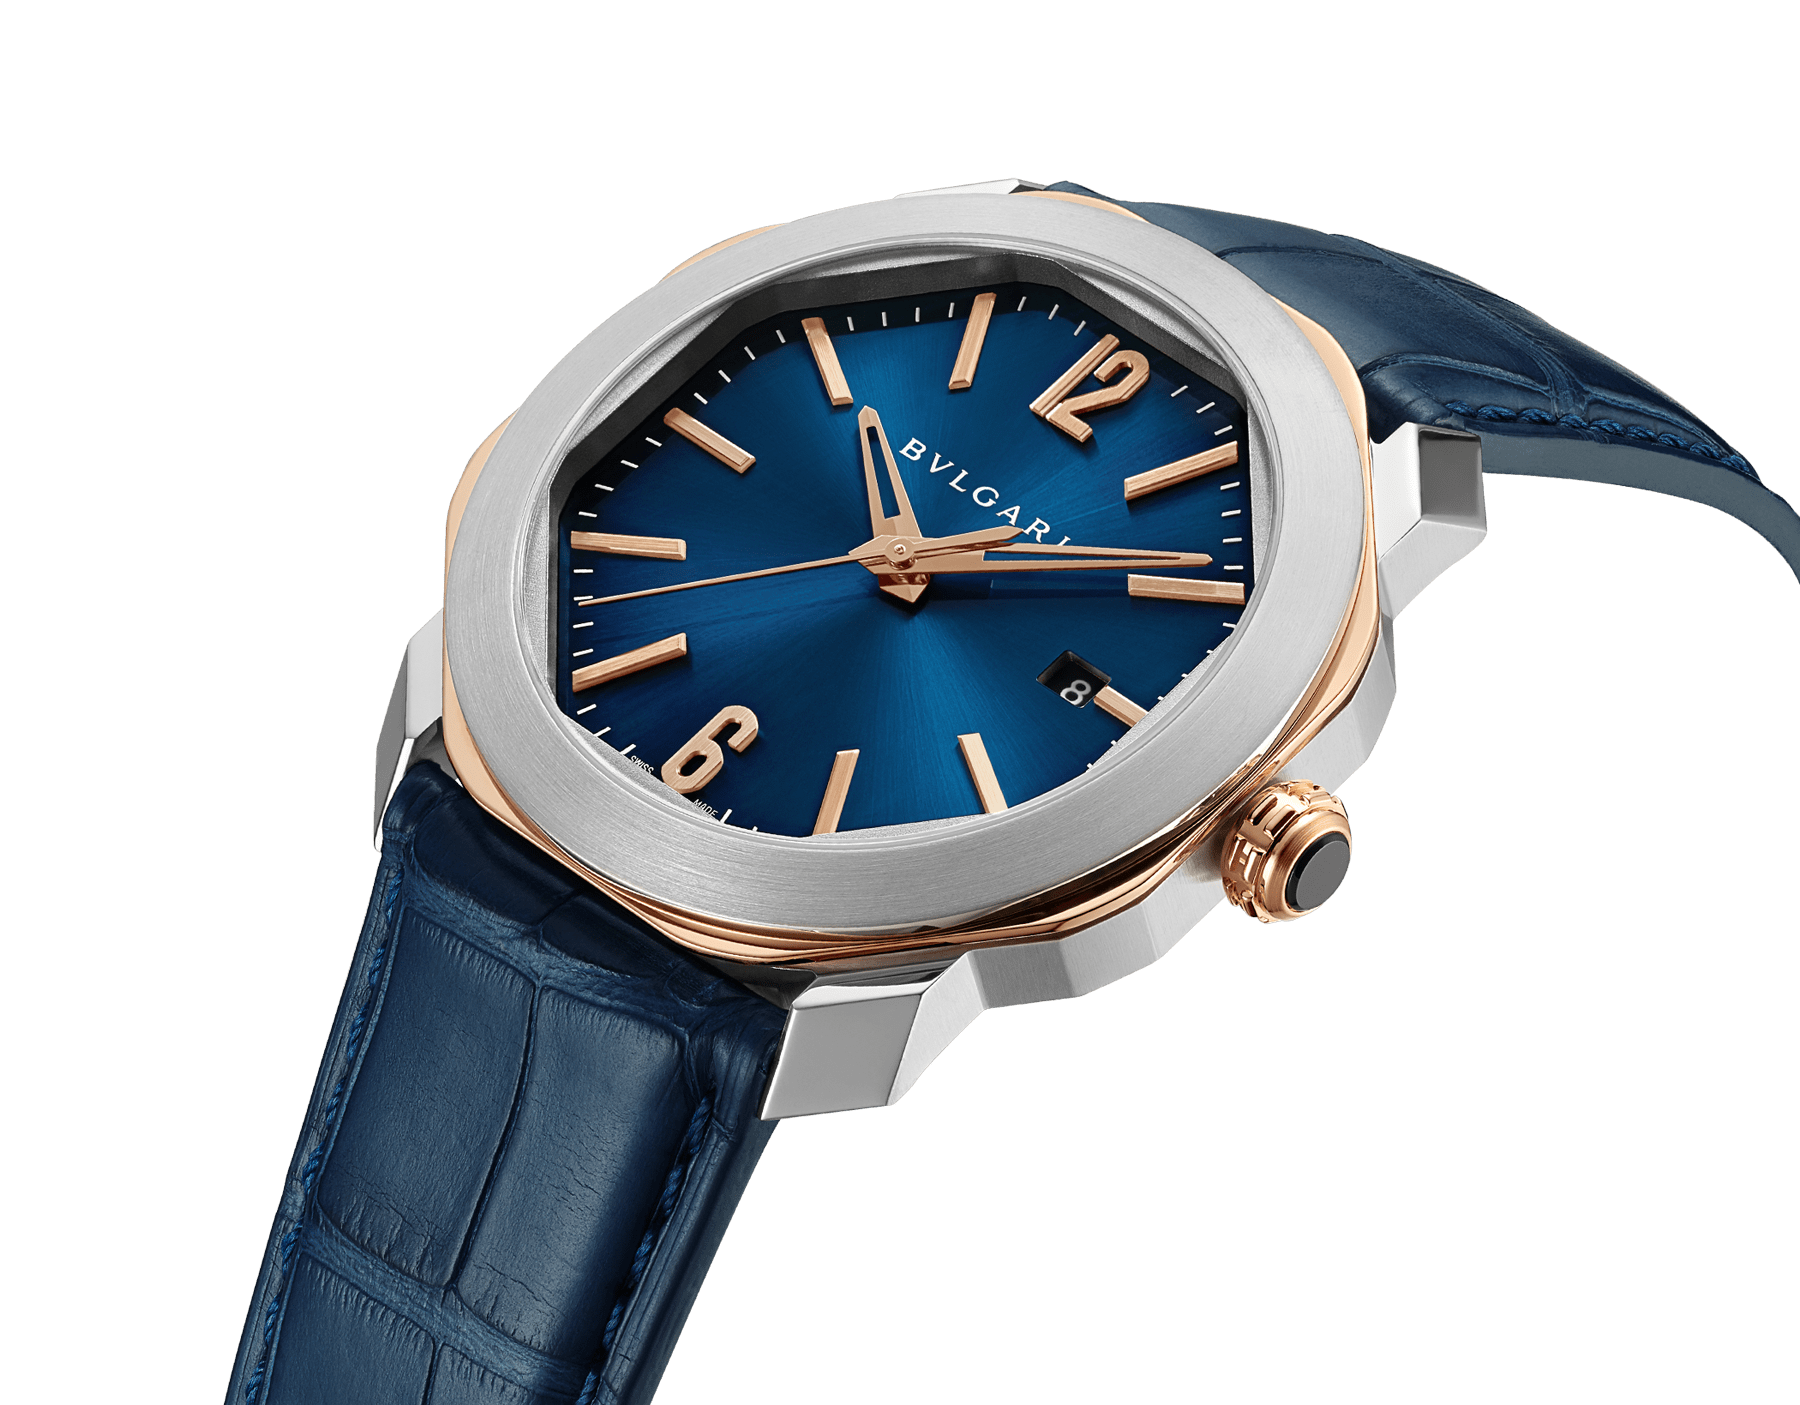 Octo Roma watch with mechanical manufacture movement, automatic winding, stainless steel and 18 kt rose gold case, blue dial and blue alligator bracelet. Water resistant up to 50 metres 103205 image 2